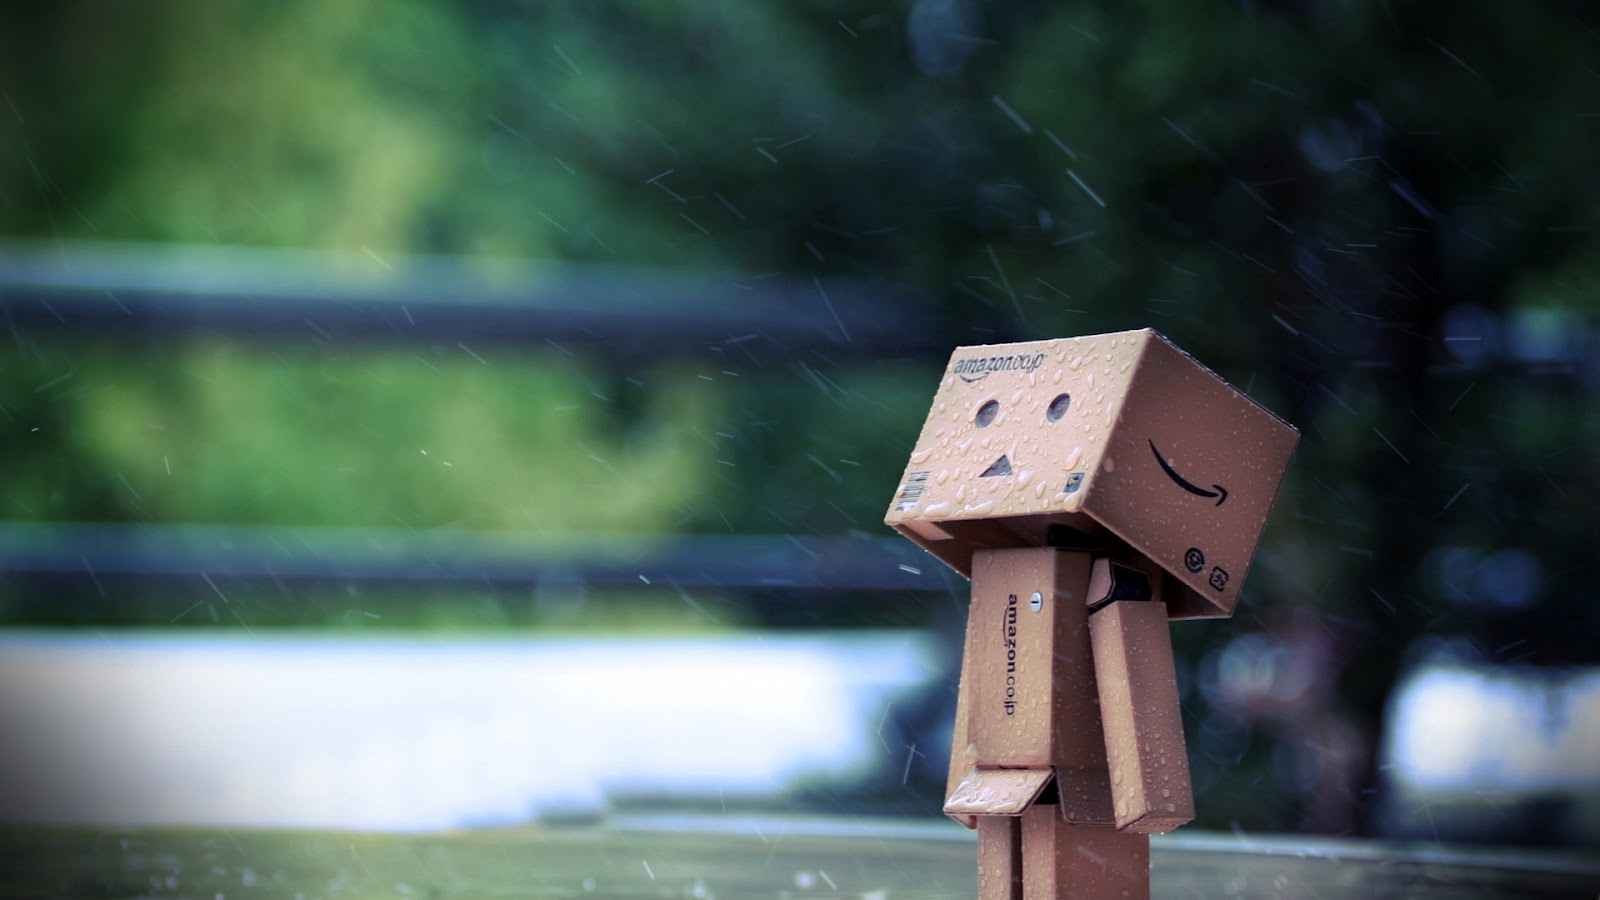 Danbo Wallpaper Seven Share